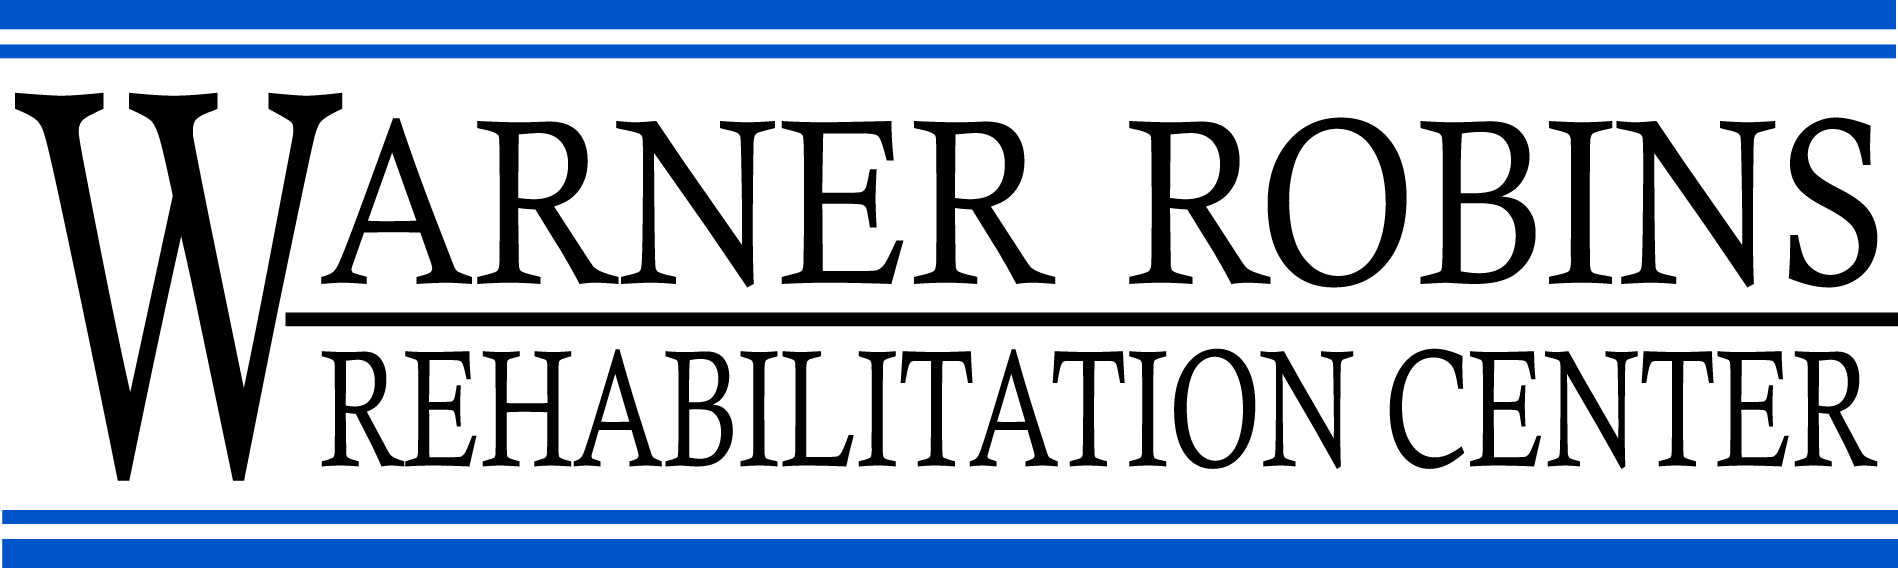 Warner Robins Rehabilitation Center logo